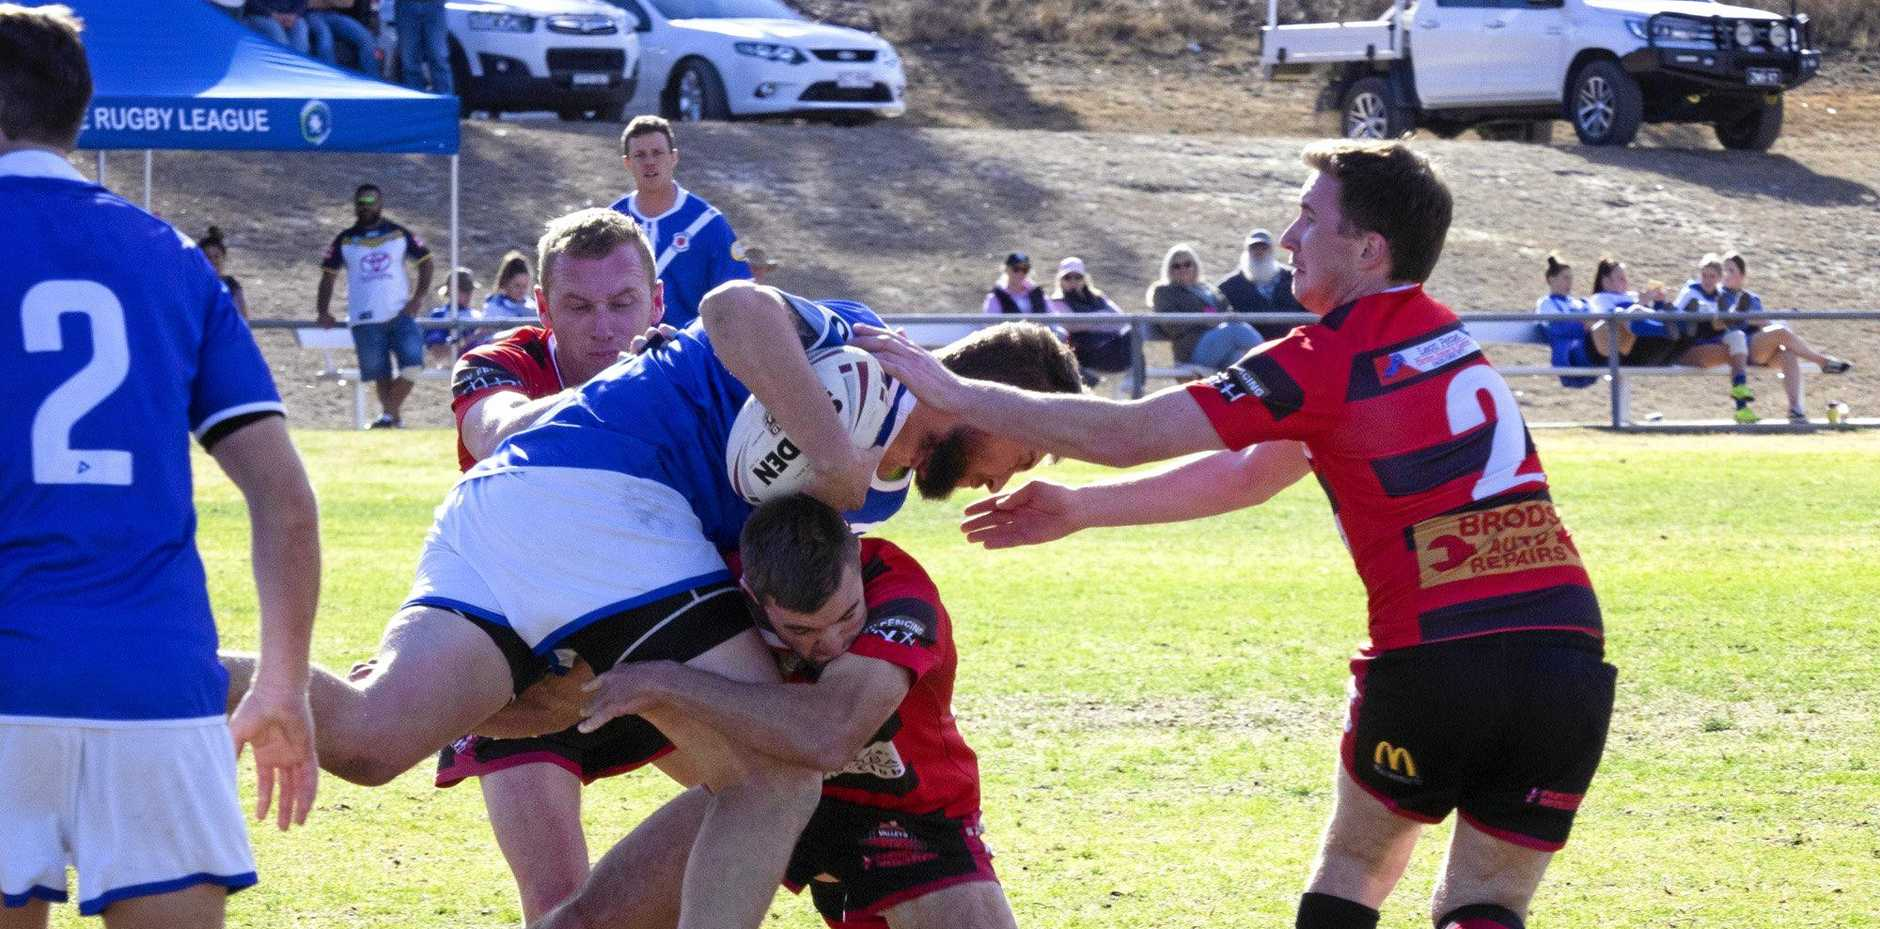 NO MATCH: The Gremlins dominated a depleted Valleys Roosters side on Saturday in front of a big home crowd.